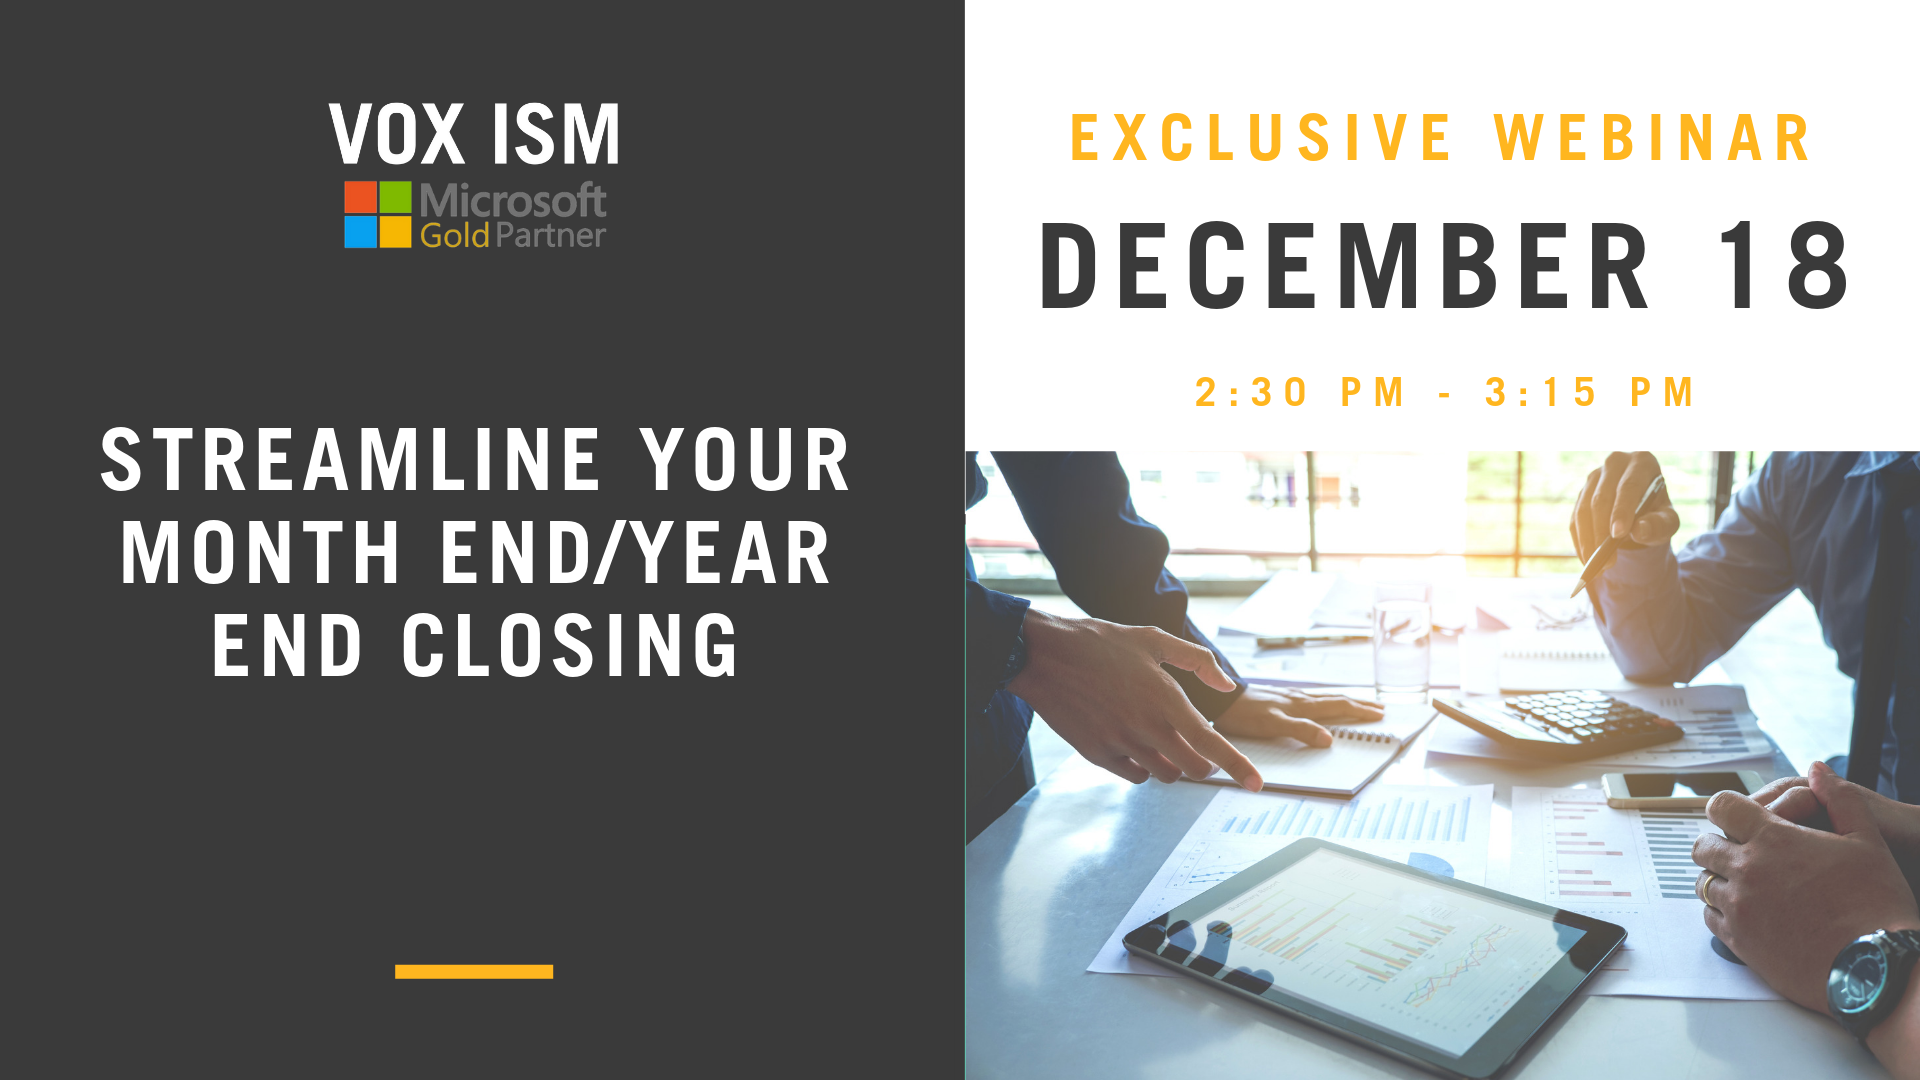 Streamline your month end/year end closing - December 18 - Webinar - VOX ISM